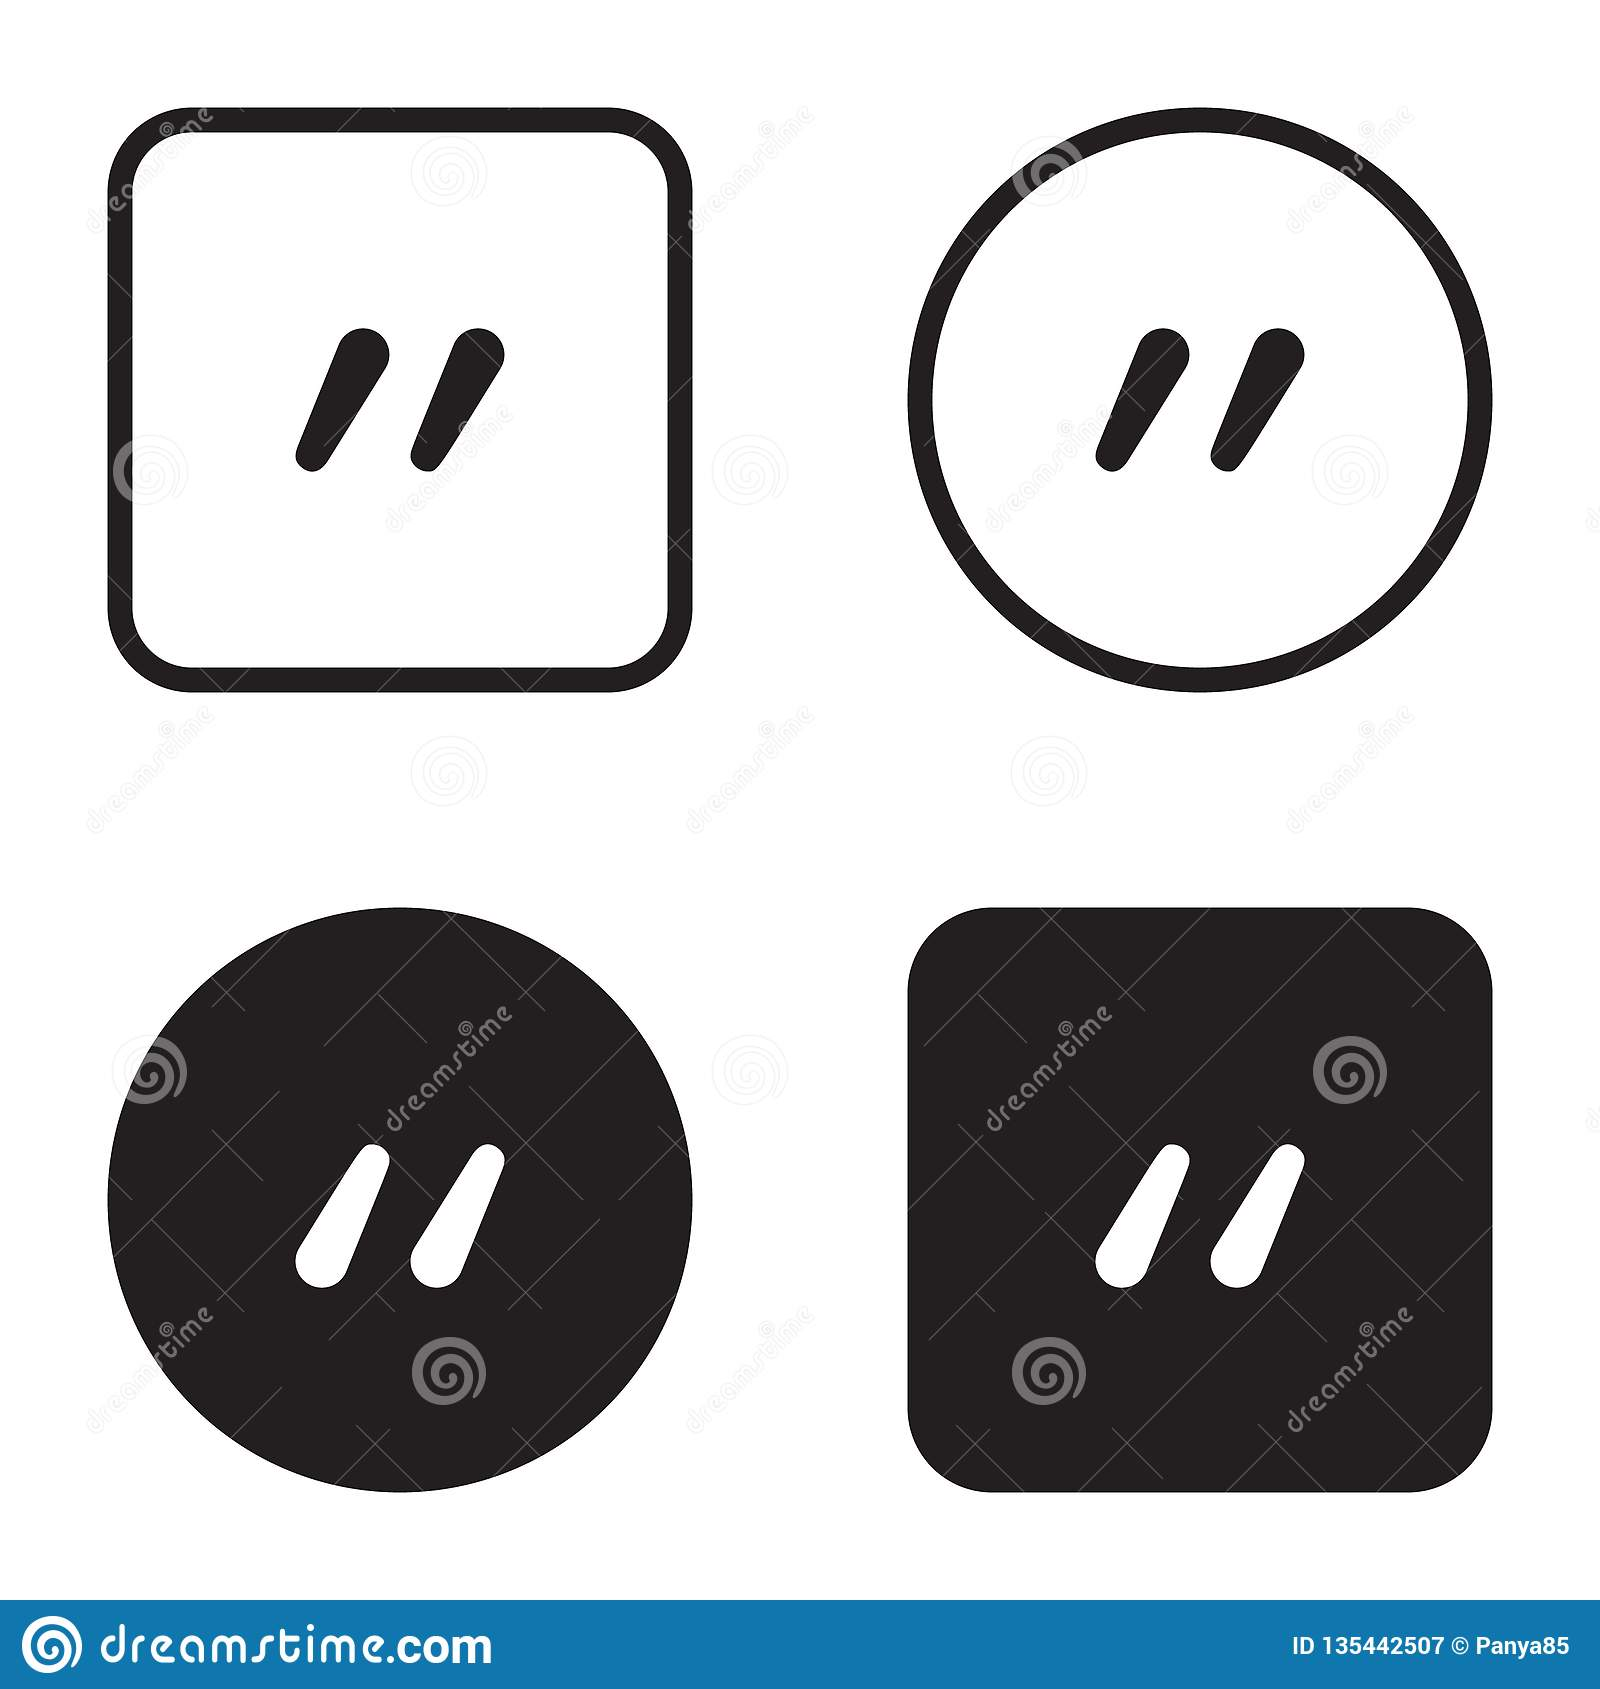 Quote symbol icon set. Quotation paragraph mark. Sign of double comma